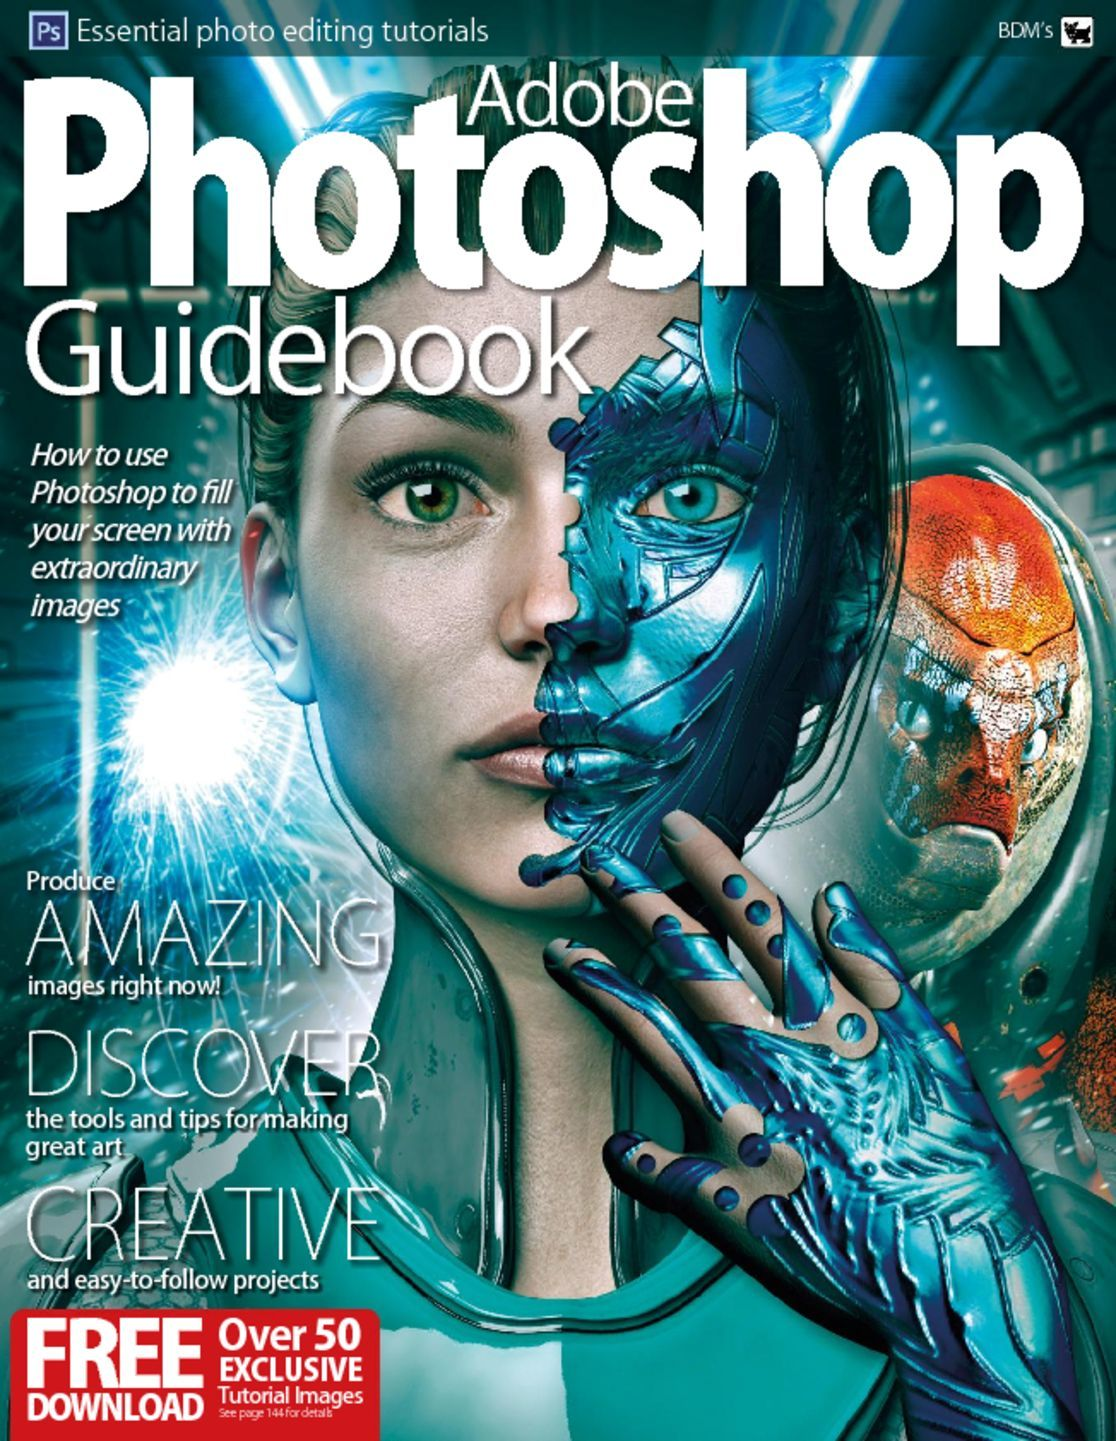 Adobe Photoshop Guidebook Digital